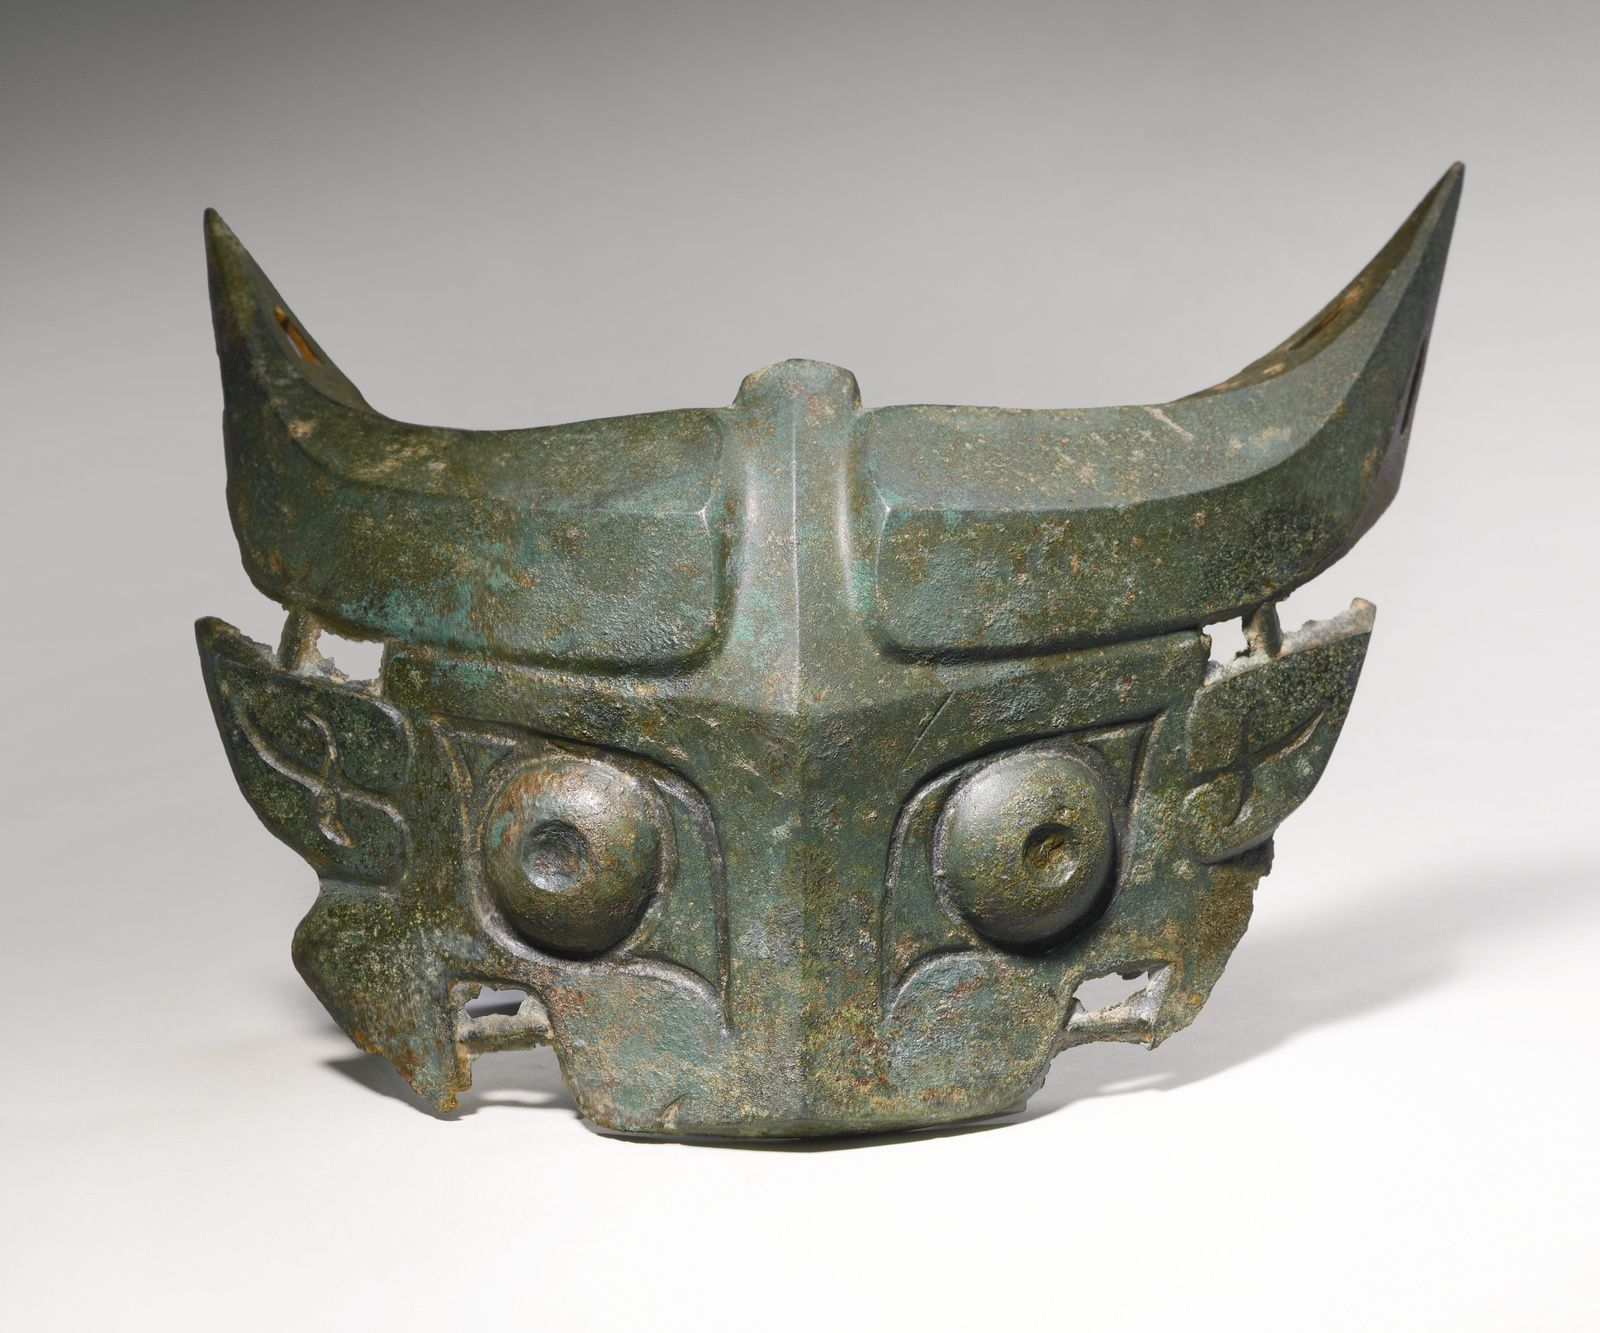 Le taotie chinois est le symbole de l'union -et non l'antagonisme- de l'homme et des forces spirituelles et physiques de la Nature. A BRONZE TAOTIE MASK EARLY WESTERN ZHOU DYNASTY, 11TH-10TH CENTURY BC cast with bulging eyes, flanked by pointed leaf-shaped ears, beneath upcurved bovine horns with hollow tips, the wide upper jaw defined by an out-curved snout and a pair of hooked fangs, with dark green surface patina and widely scattered reddish cuprite encrustation Width 9 in., 22.9 cm. Sothebys http://www.sothebys.com/en/auctions/ecatalogue/2013/magnificent-ritual-bronzes-n09026/lot.10.html